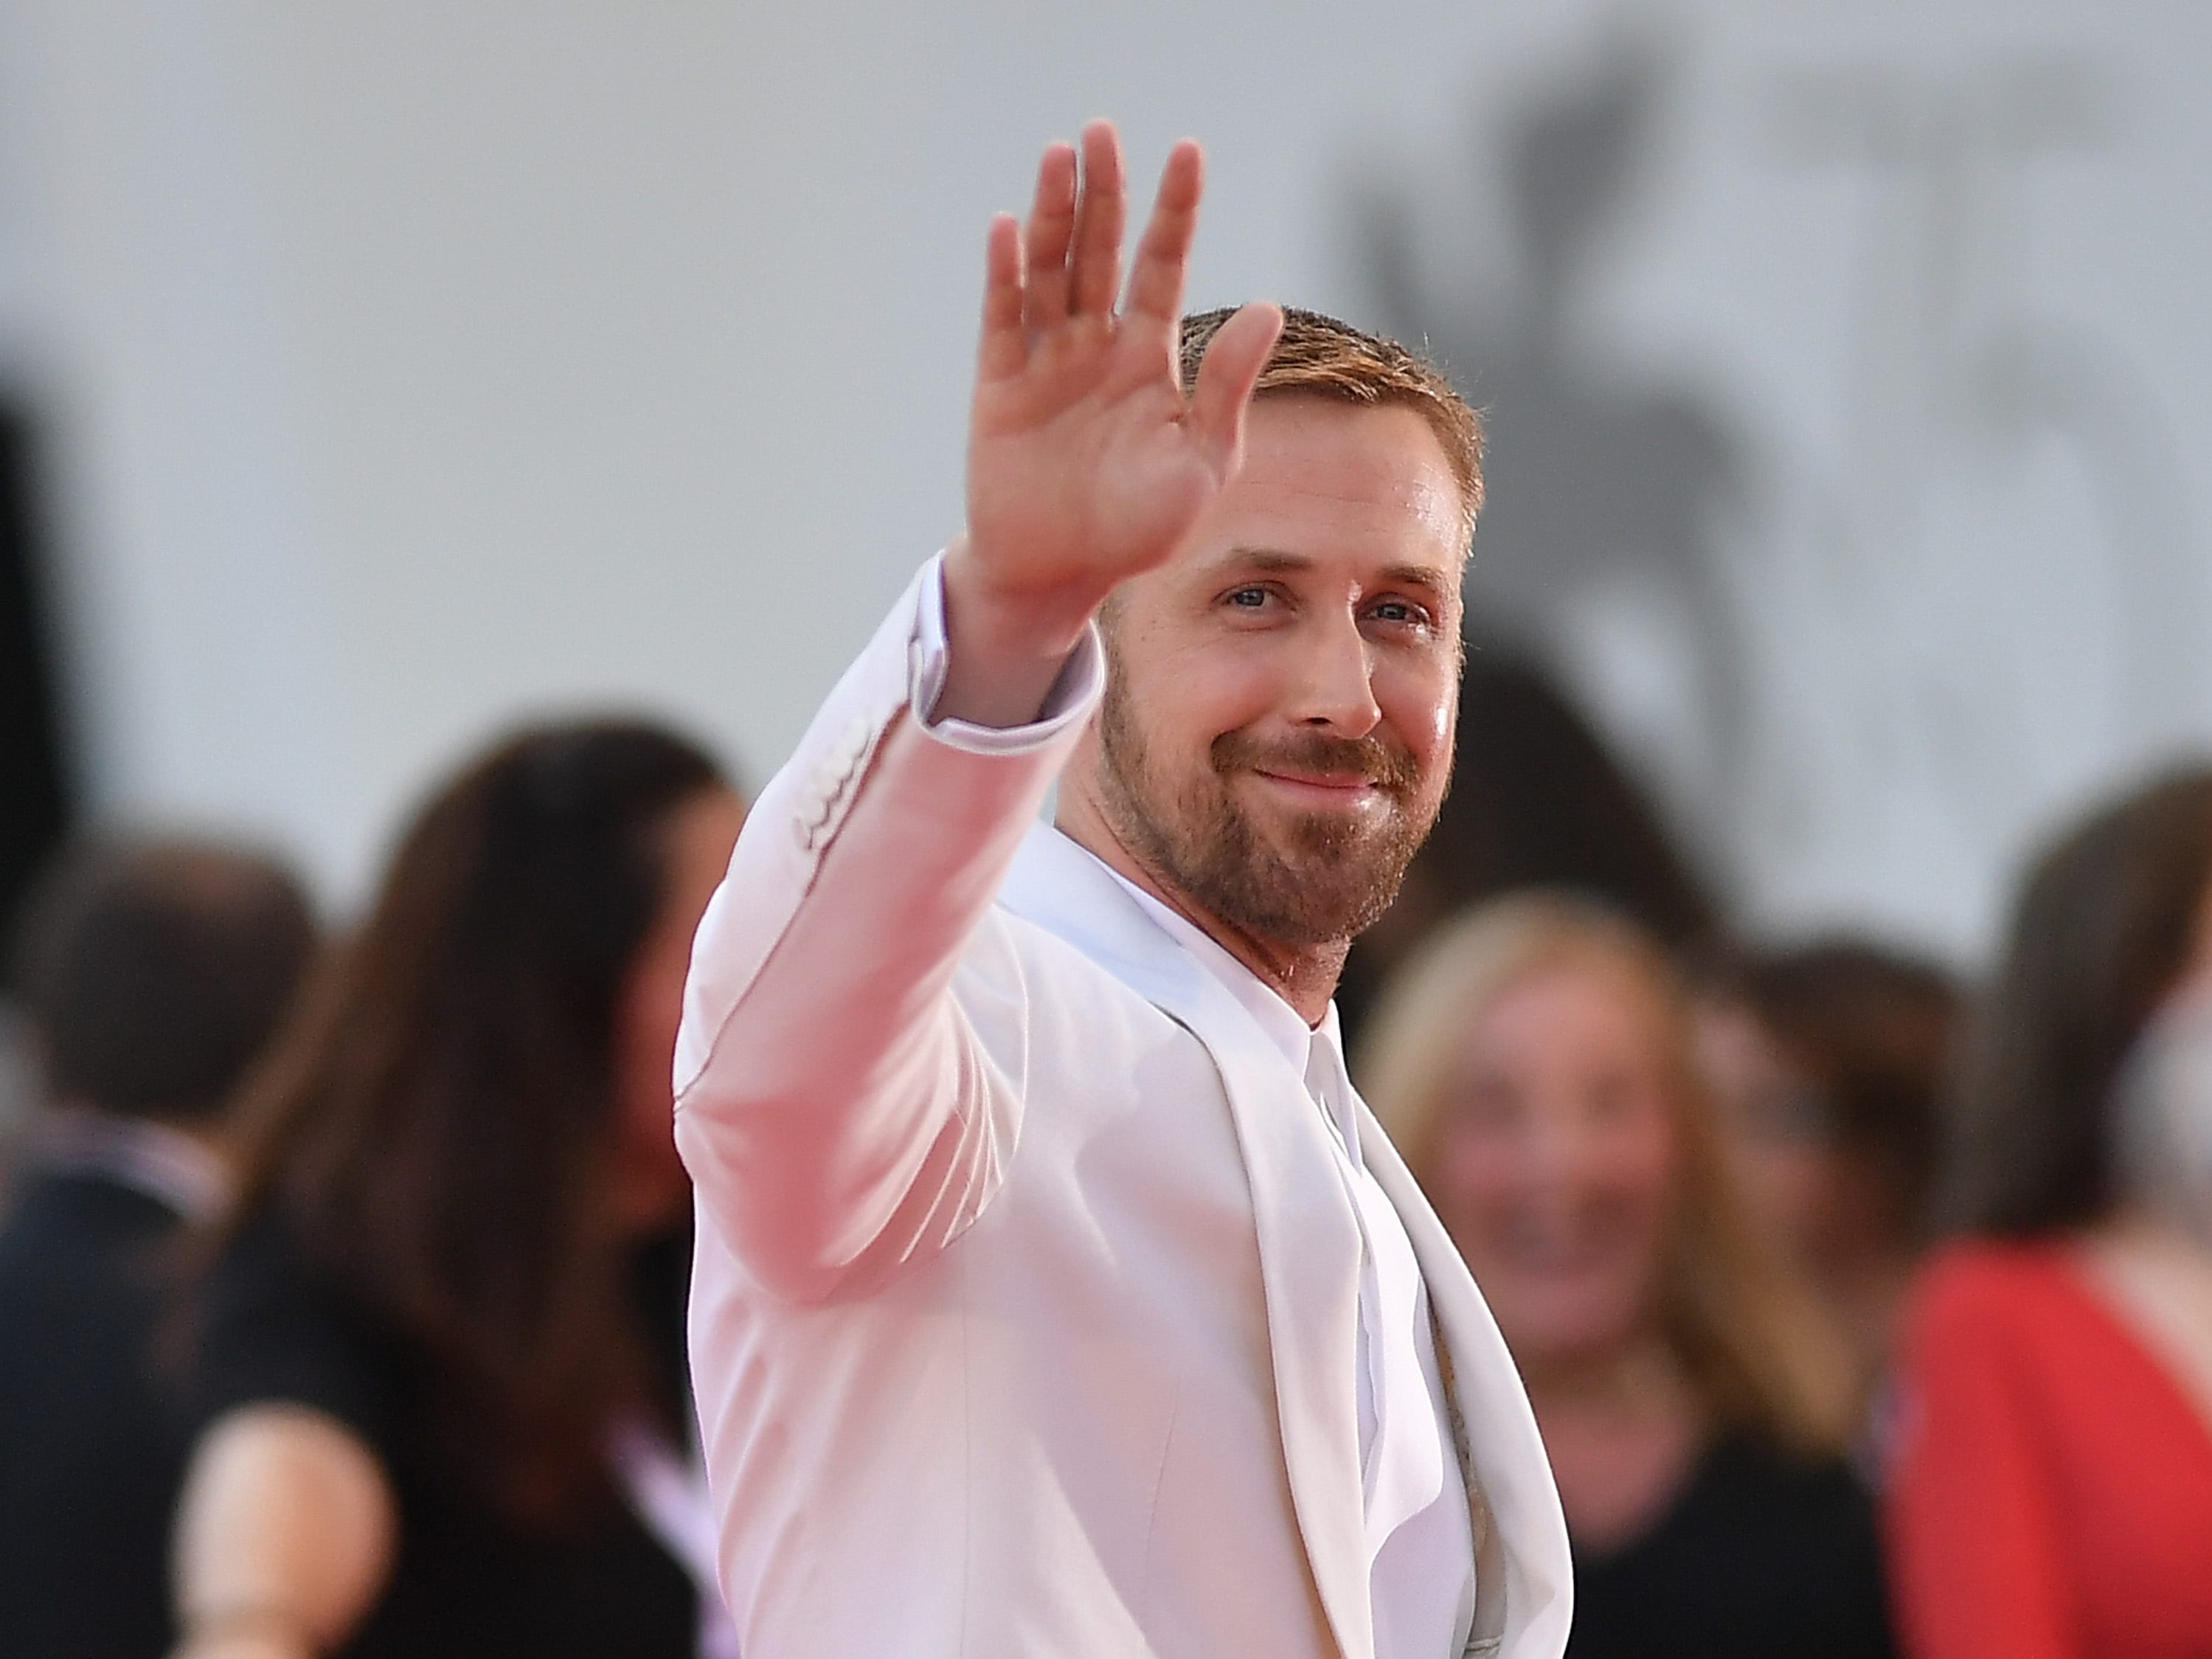 VENICE, ITALY - AUGUST 29:  Ryan Gosling walks the red carpet ahead of the opening ceremony and the 'First Man' screening during the 75th Venice Film Festival at Sala Grande on August 29, 2018 in Venice, Italy.  (Photo by Jacopo Raule/FilmMagic) ORG XMIT: 775200610 ORIG FILE ID: 1025057098